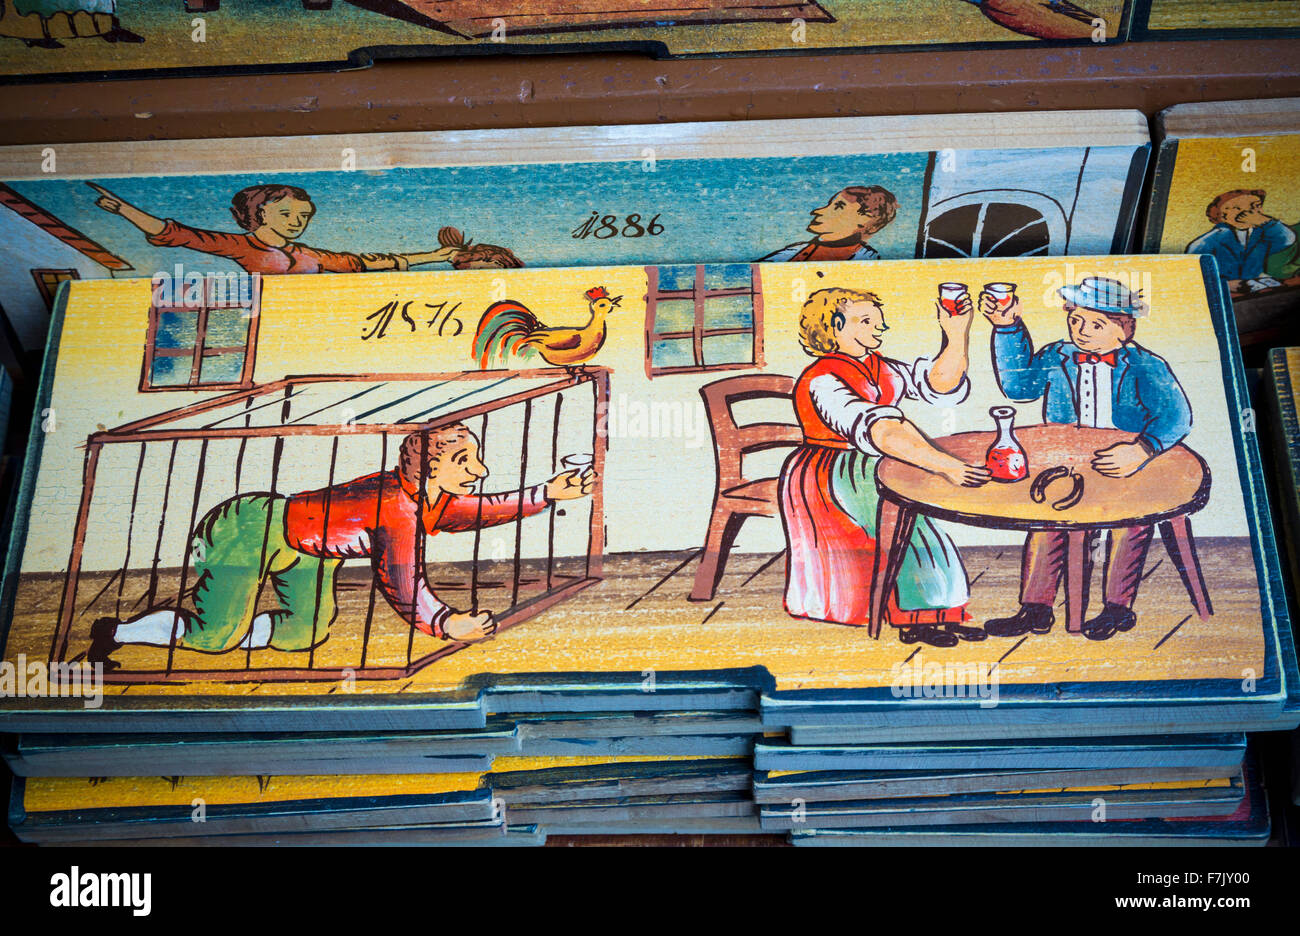 Beehive panels, Slovenia. Copies of originals are a souvenir item with visitors. Originally, the panels decorated Stock Photo